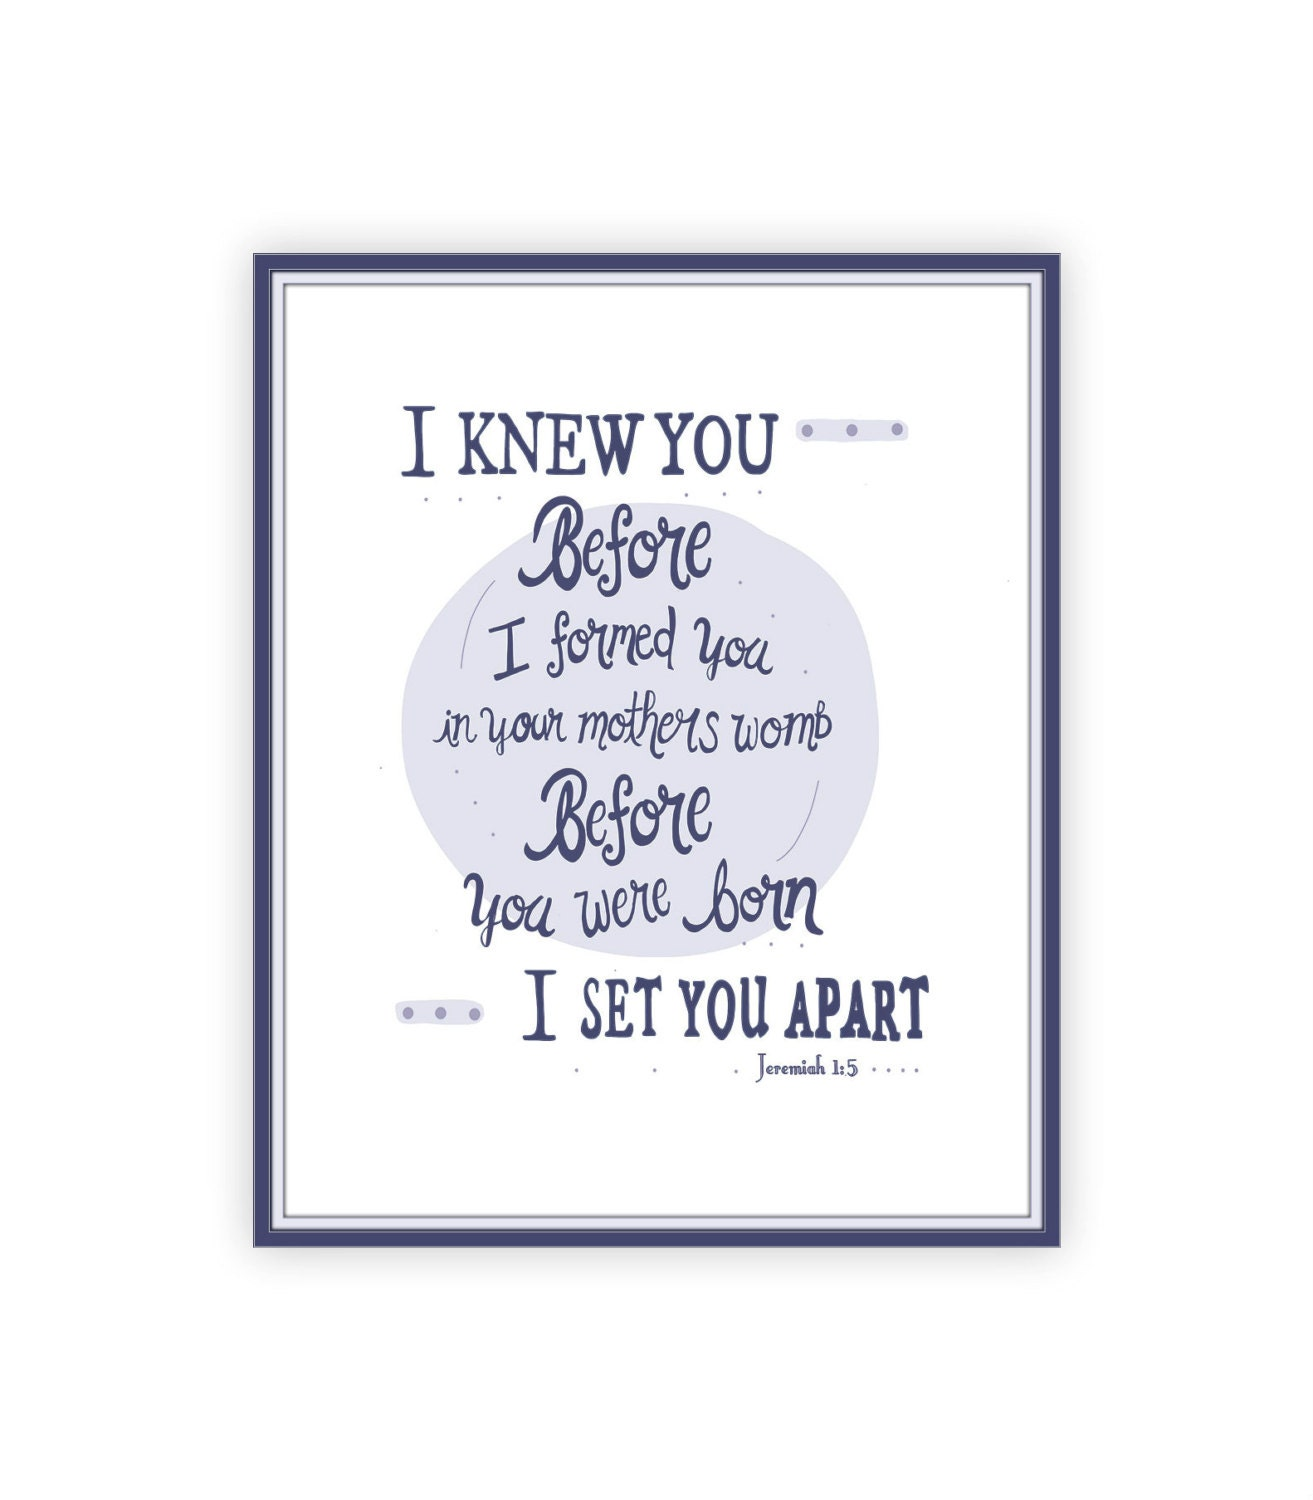 Spiritual Baby Shower Quotes: Jeremiah 1:5 8x10 Baby Bible Verse Boys Nursery Decor